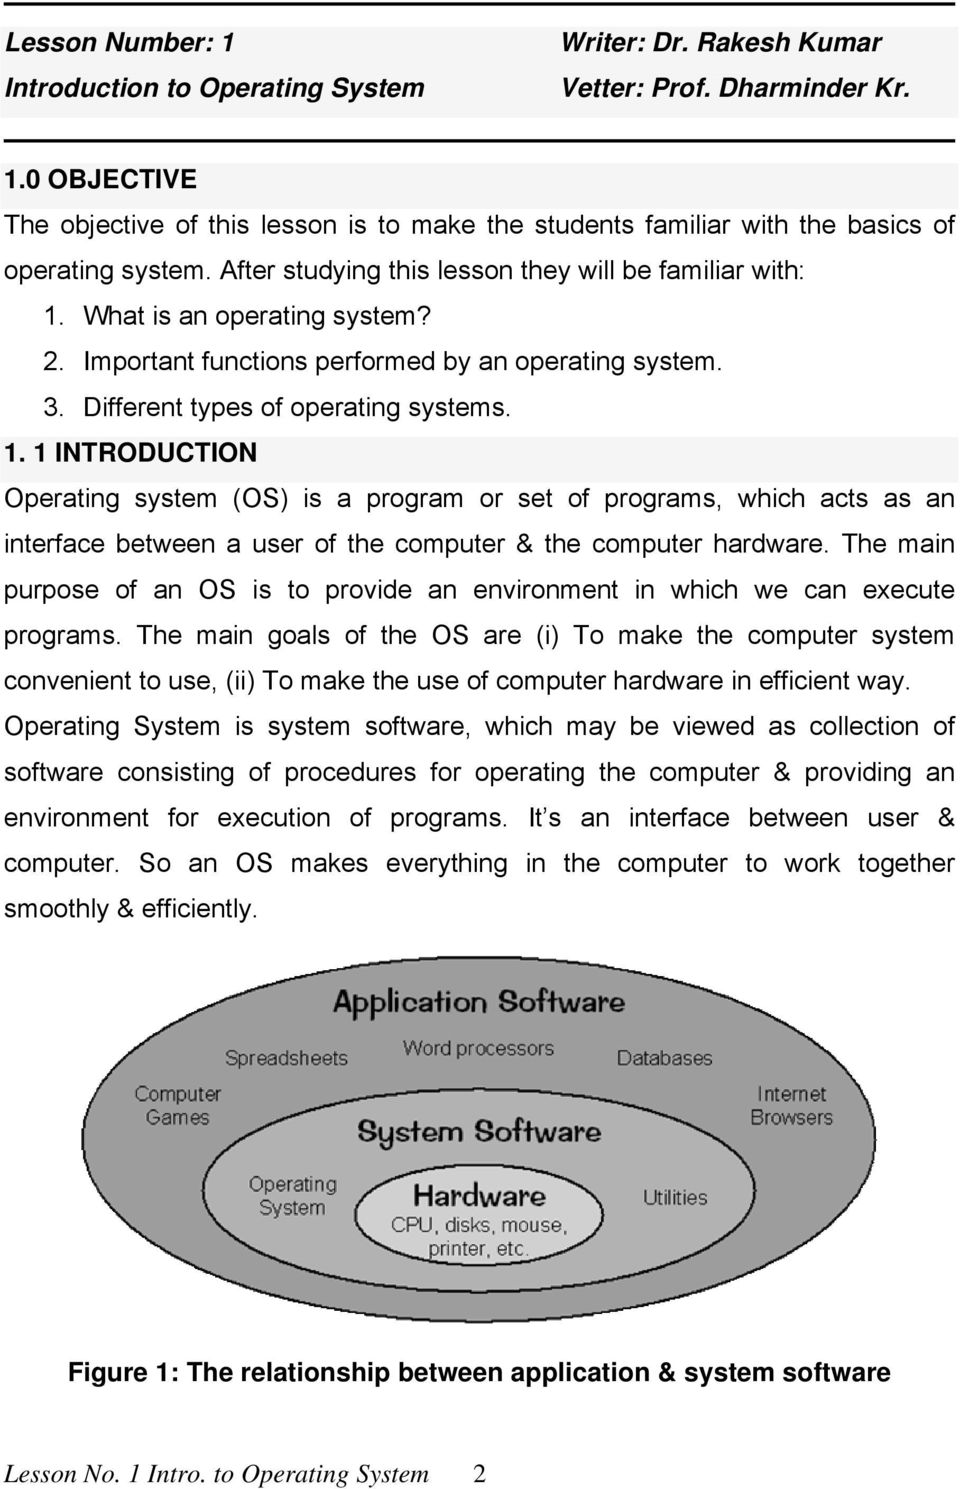 What is an operating system? 2. Important functions performed by an operating system. 3. Different types of operating systems. 1.